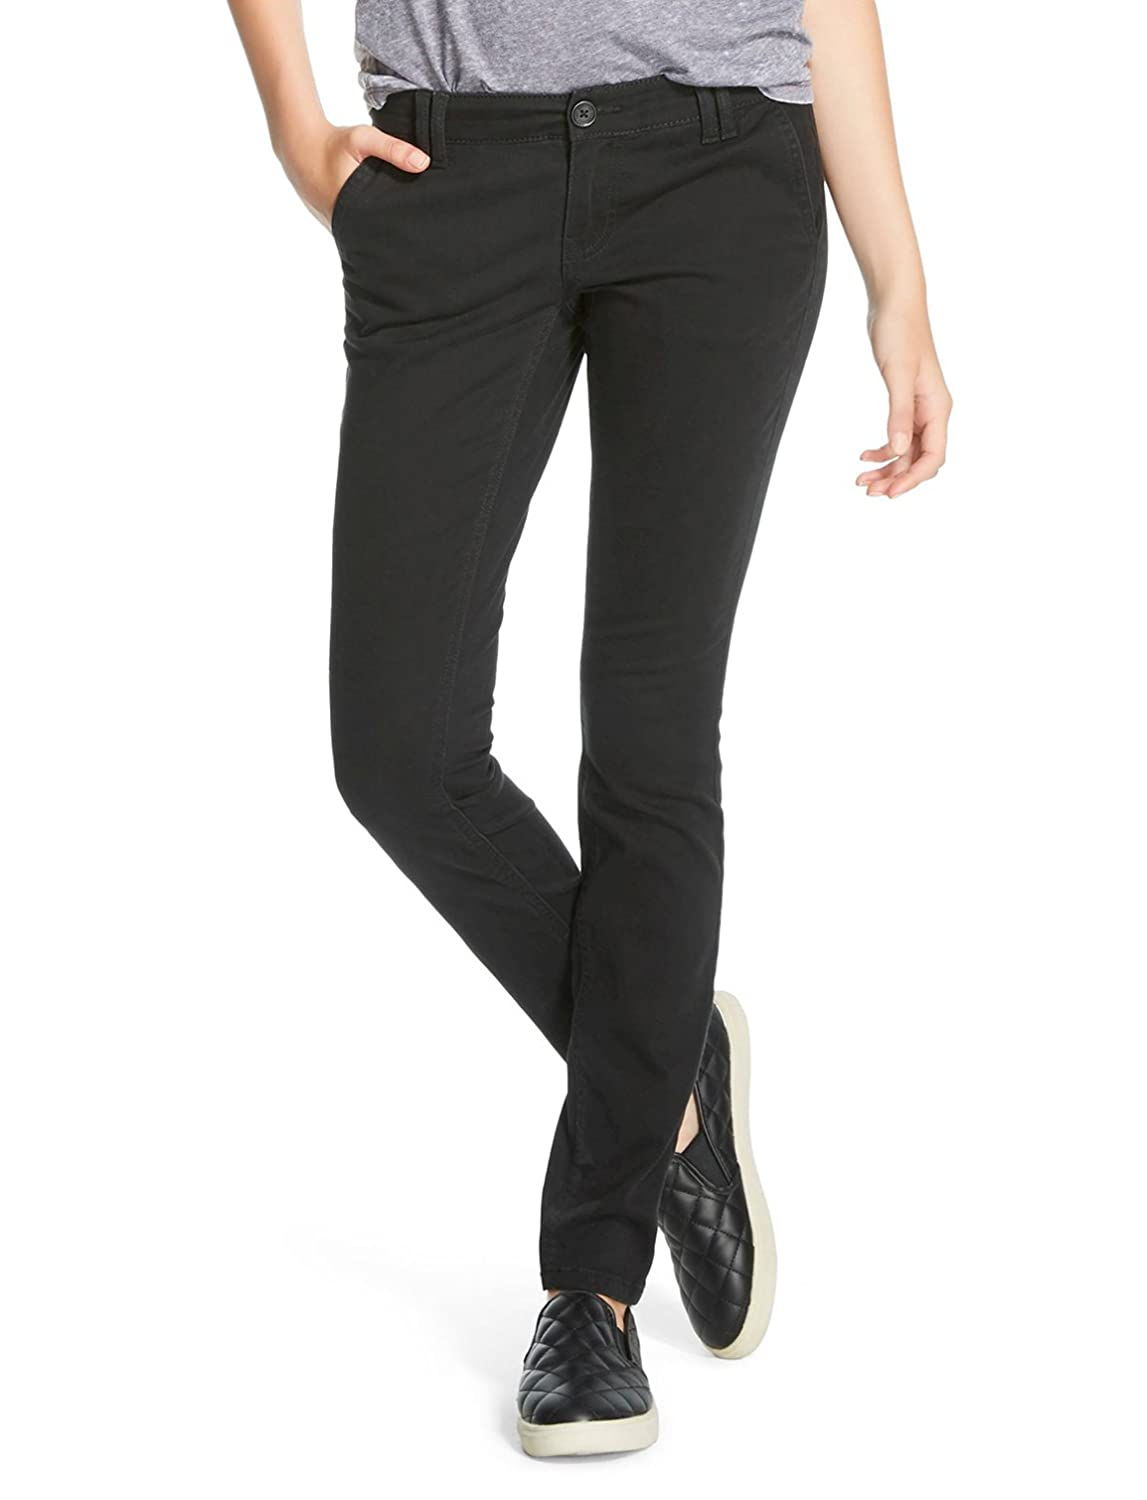 f2144a4fc7268 Front slit pocket, Back single welt pocket. Skinny Machine wash, cold,  Khakis meet skinny jeans in the Skinny Twill Pant from Mossimo Supply Co.